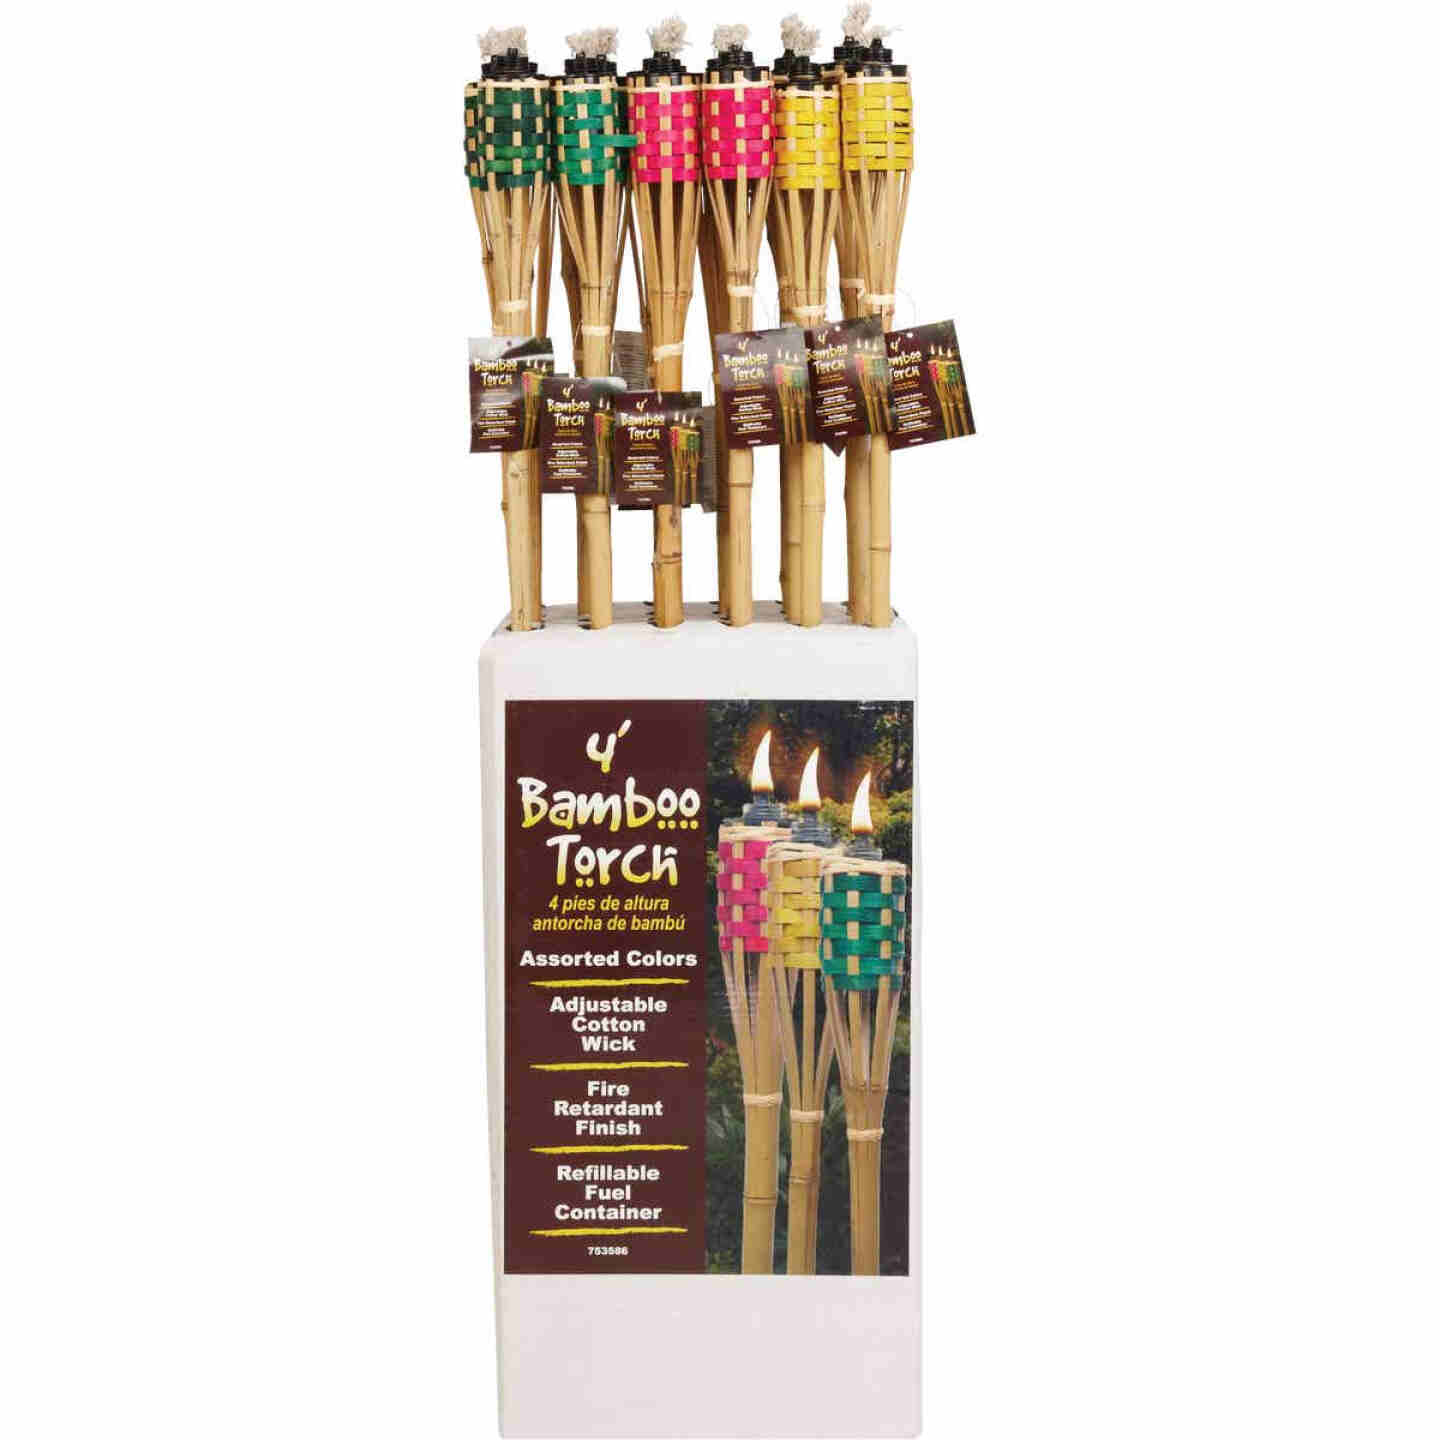 Outdoor Expressions 4 Ft. Assorted Color Bamboo Party Patio Torch Image 4